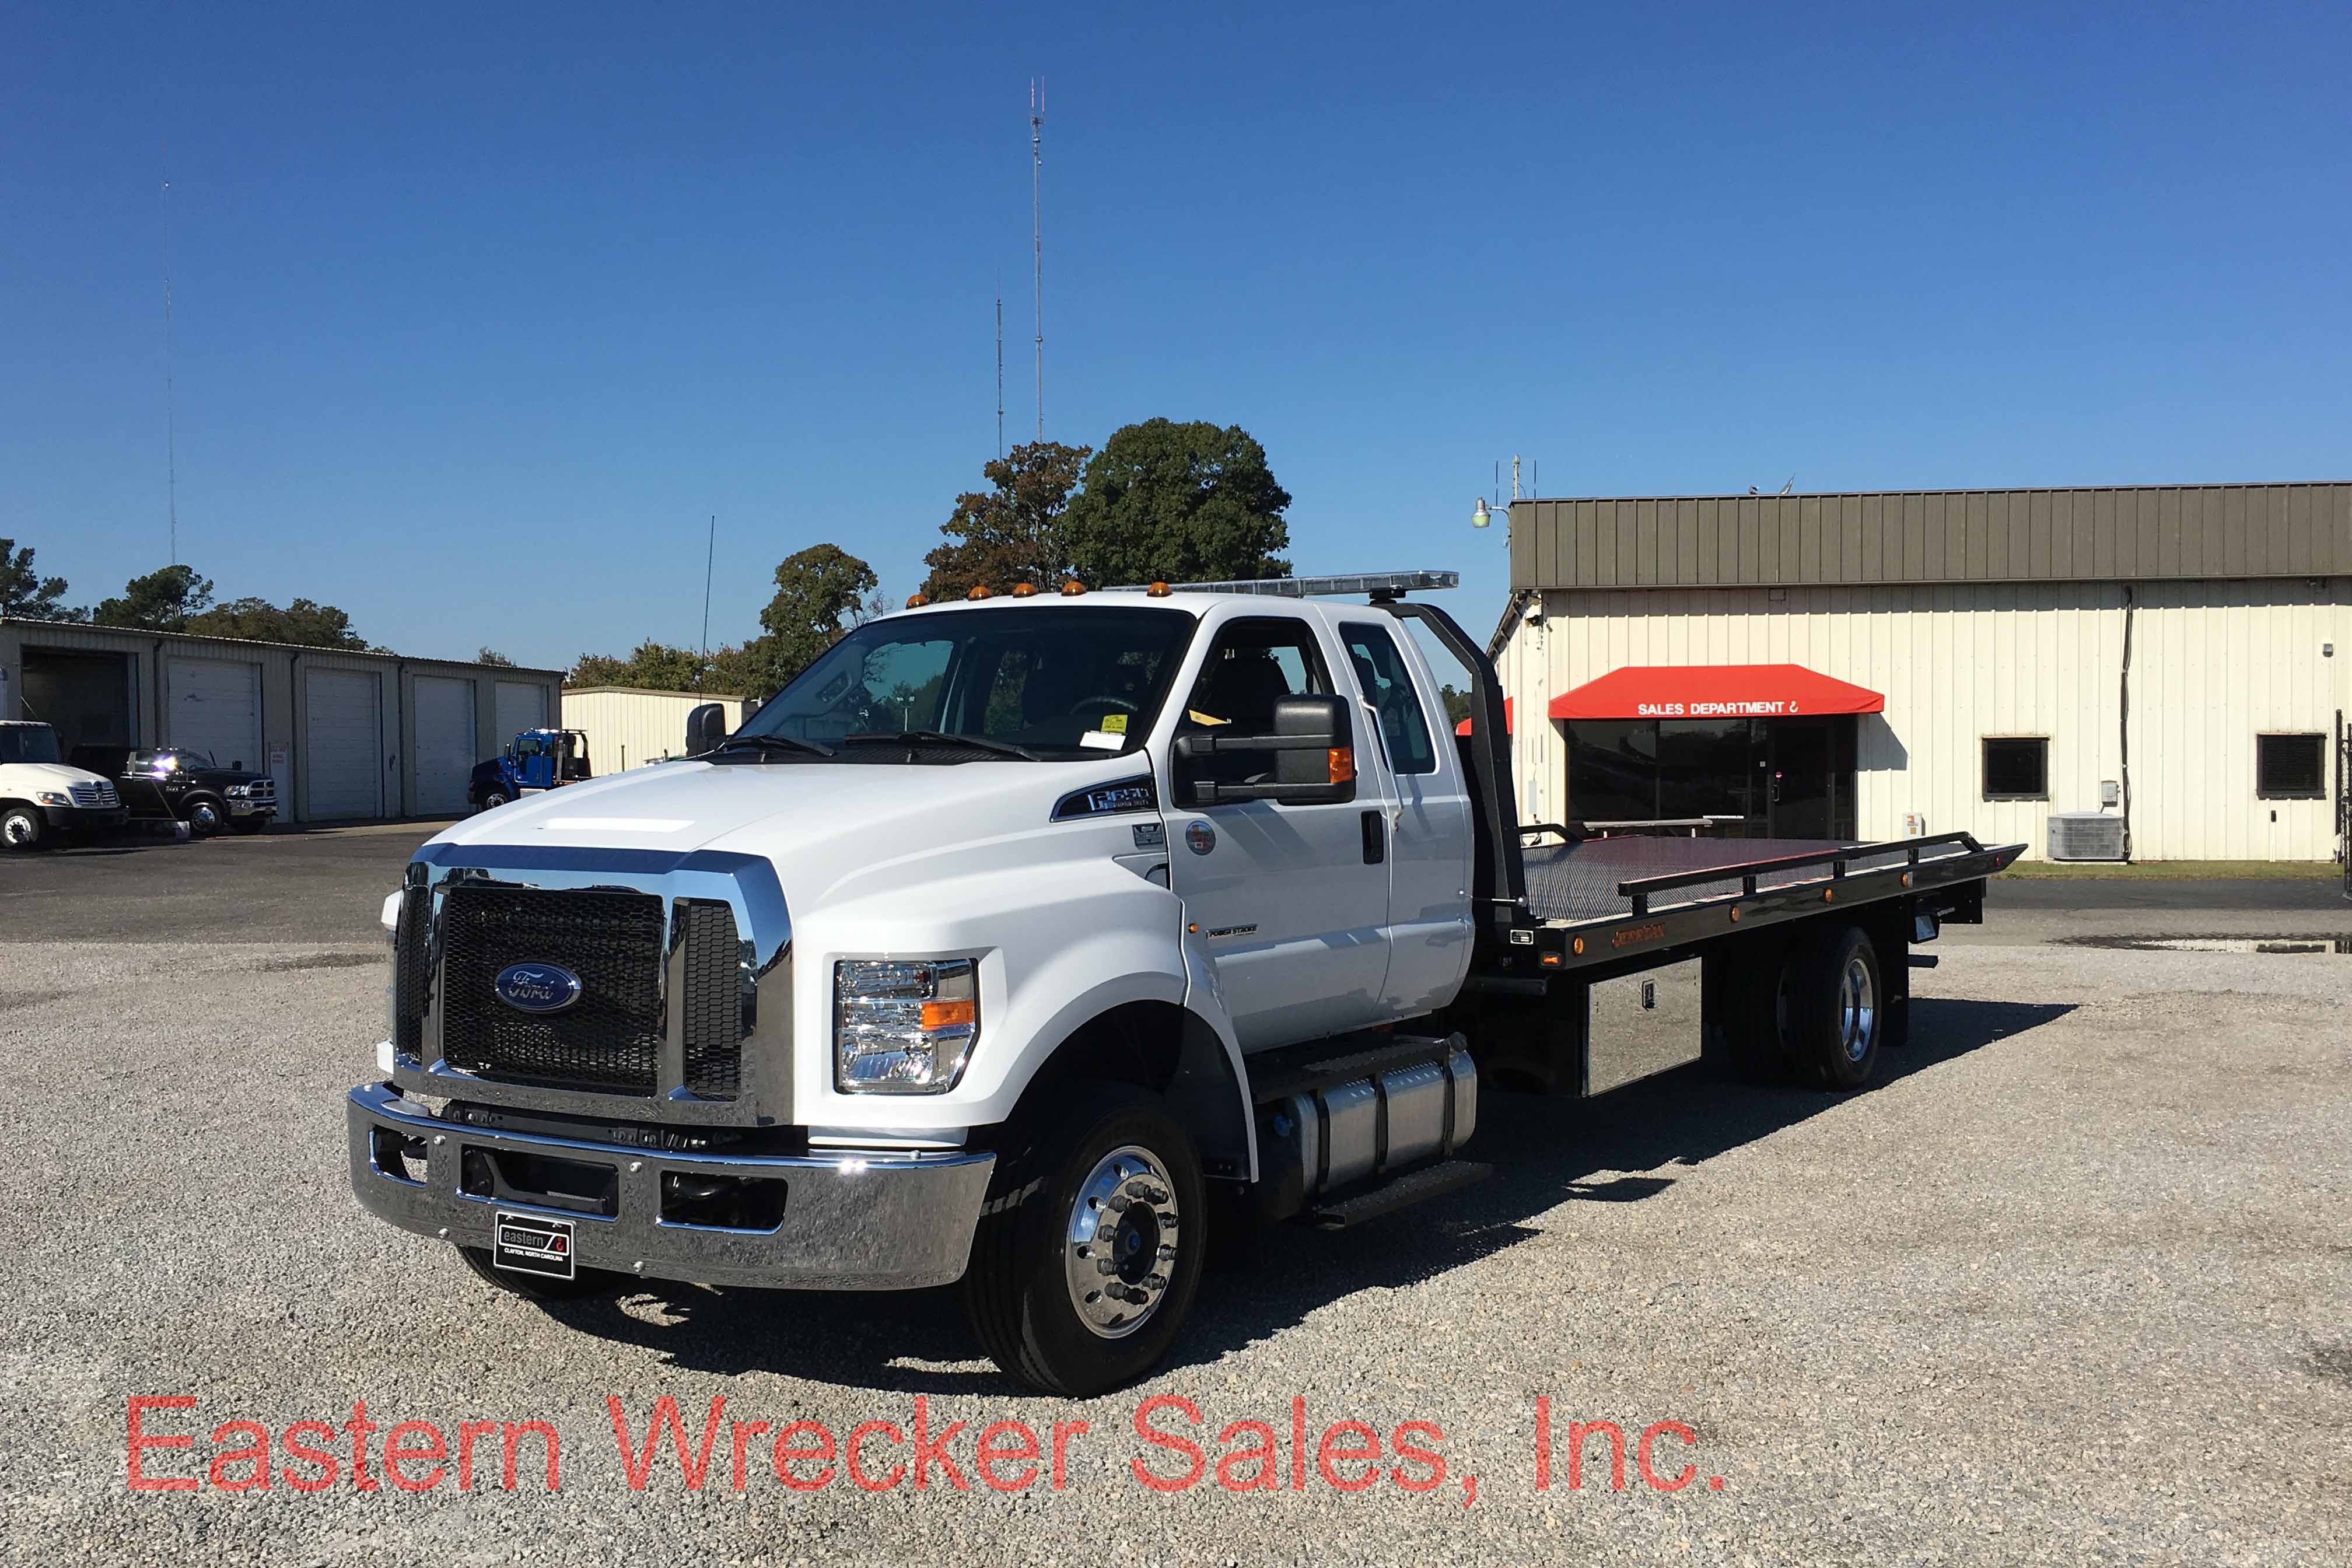 F Front Ds Ford F Tow Truck For Sale Jerr Dan Carrier on Used Extended Cab Rollback Wreckers Sale